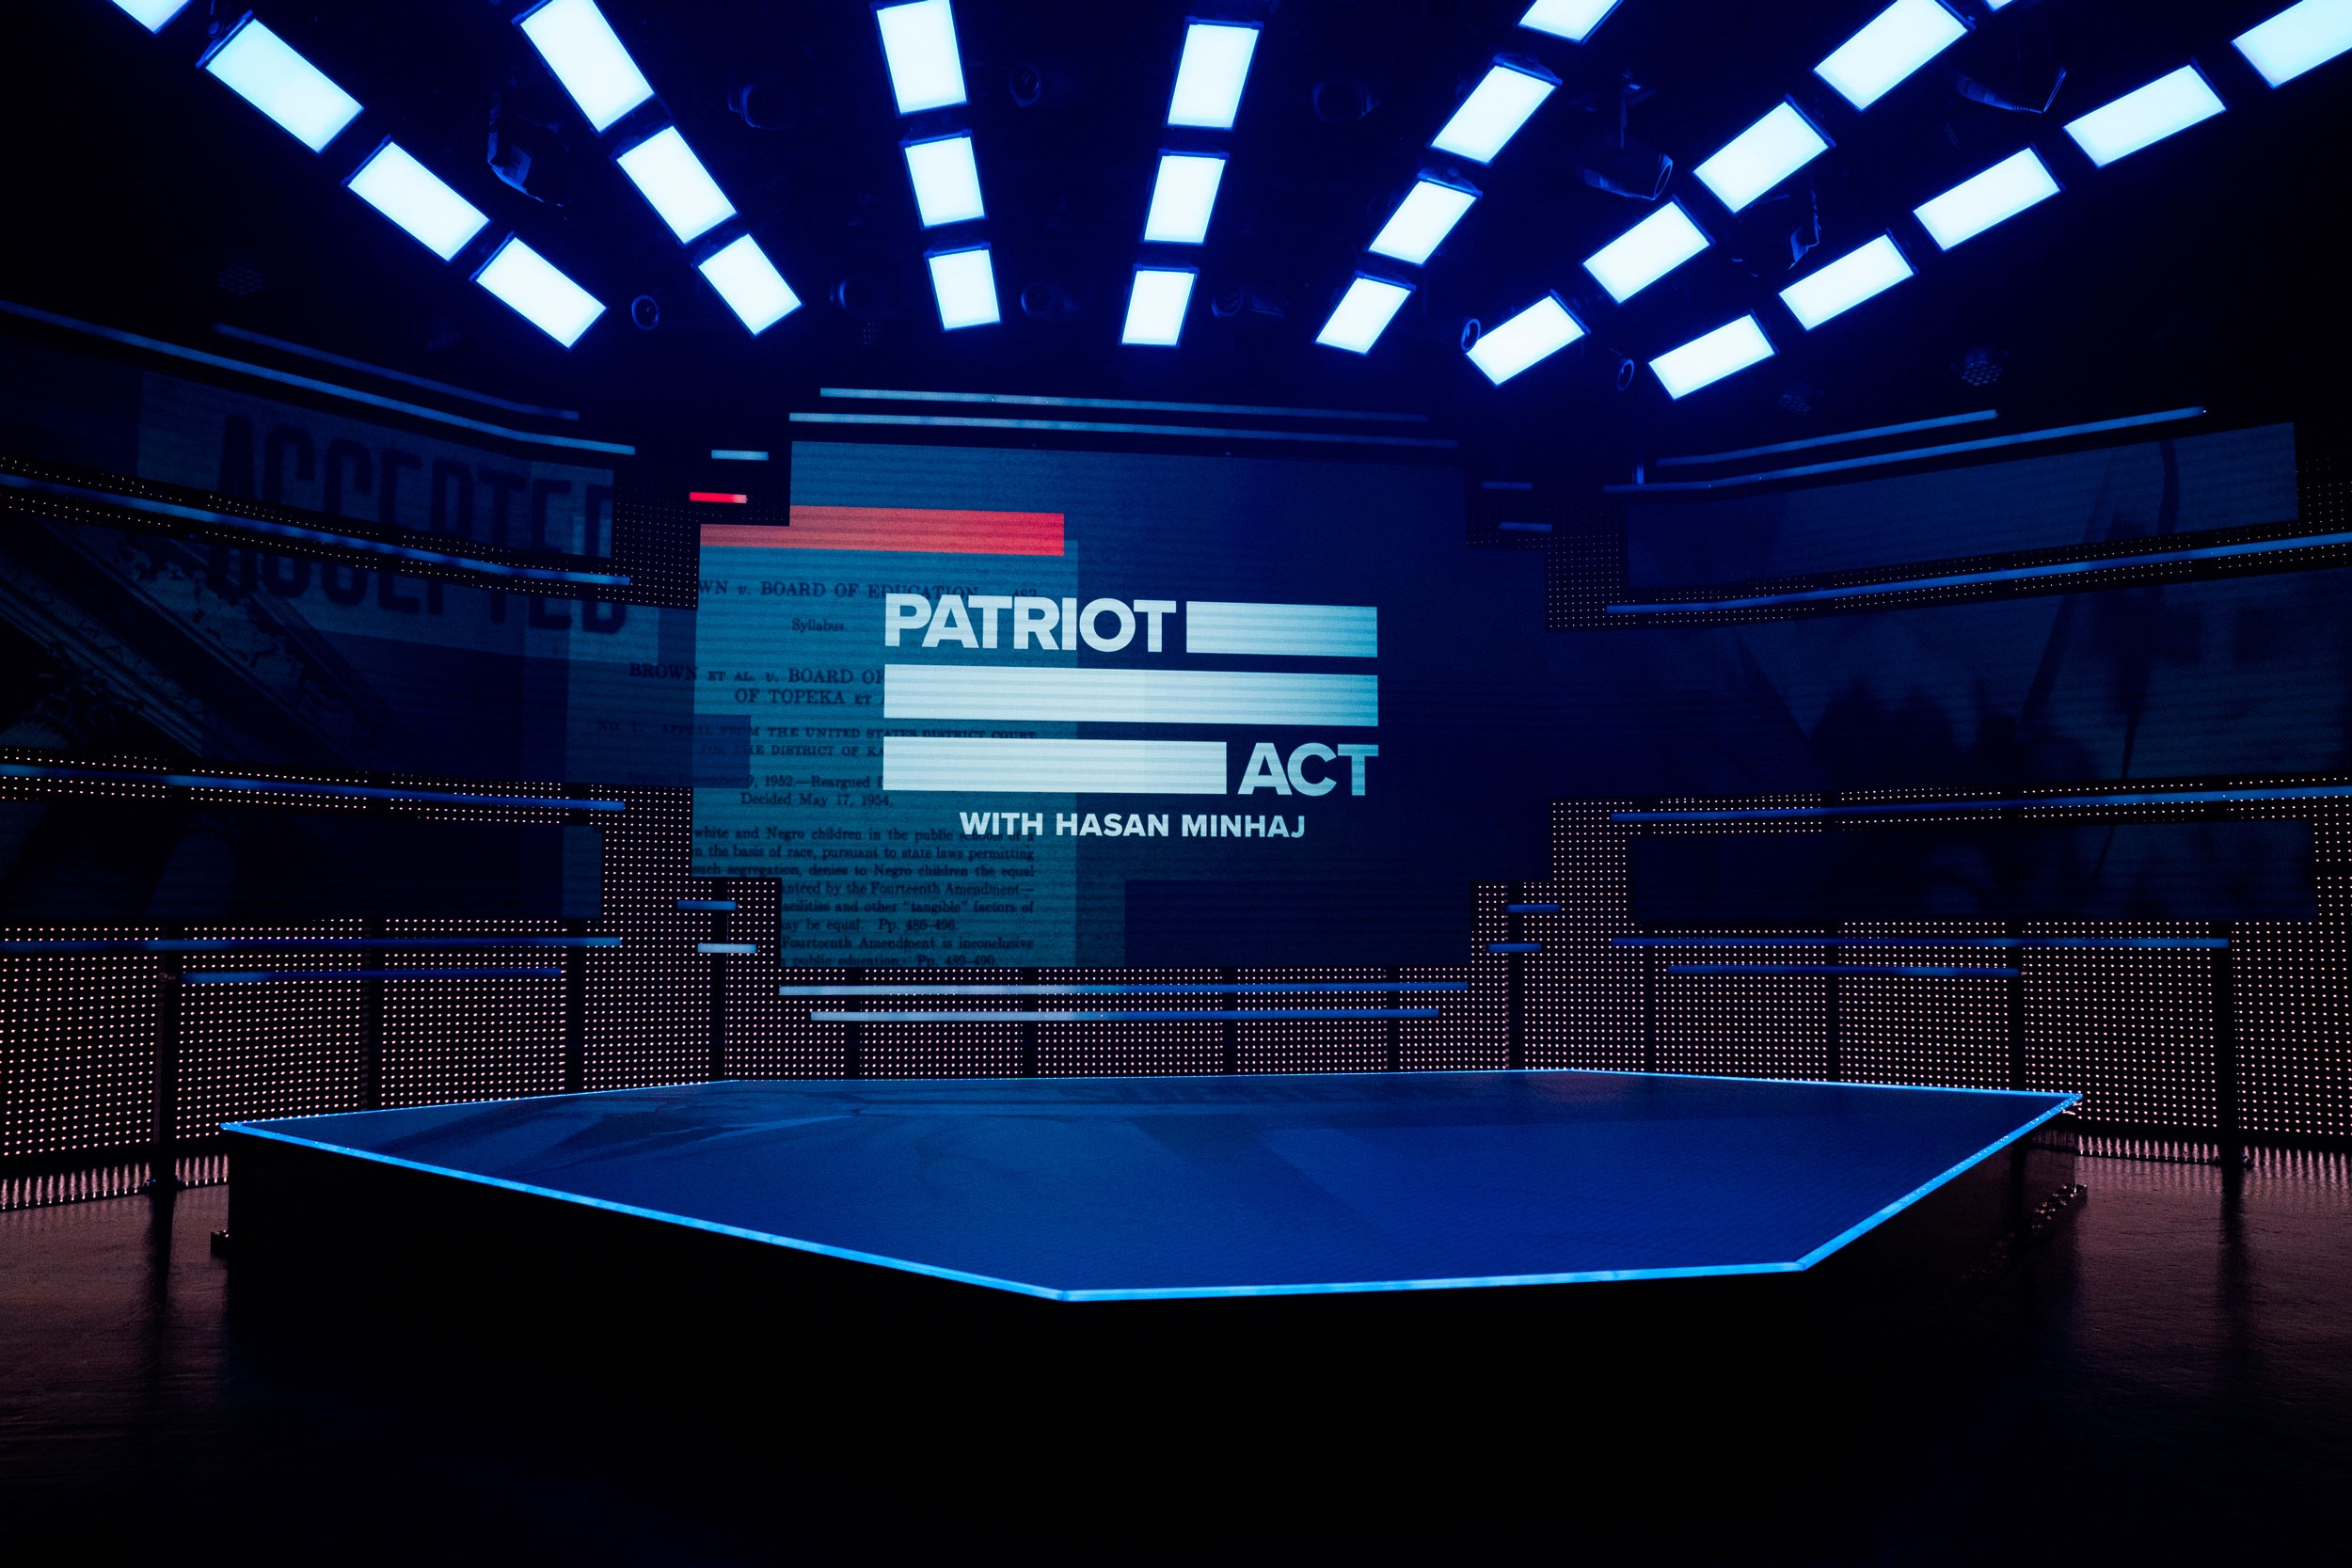 Patriot Act withHasan Minhaj - NETFLIX ORIGINAL